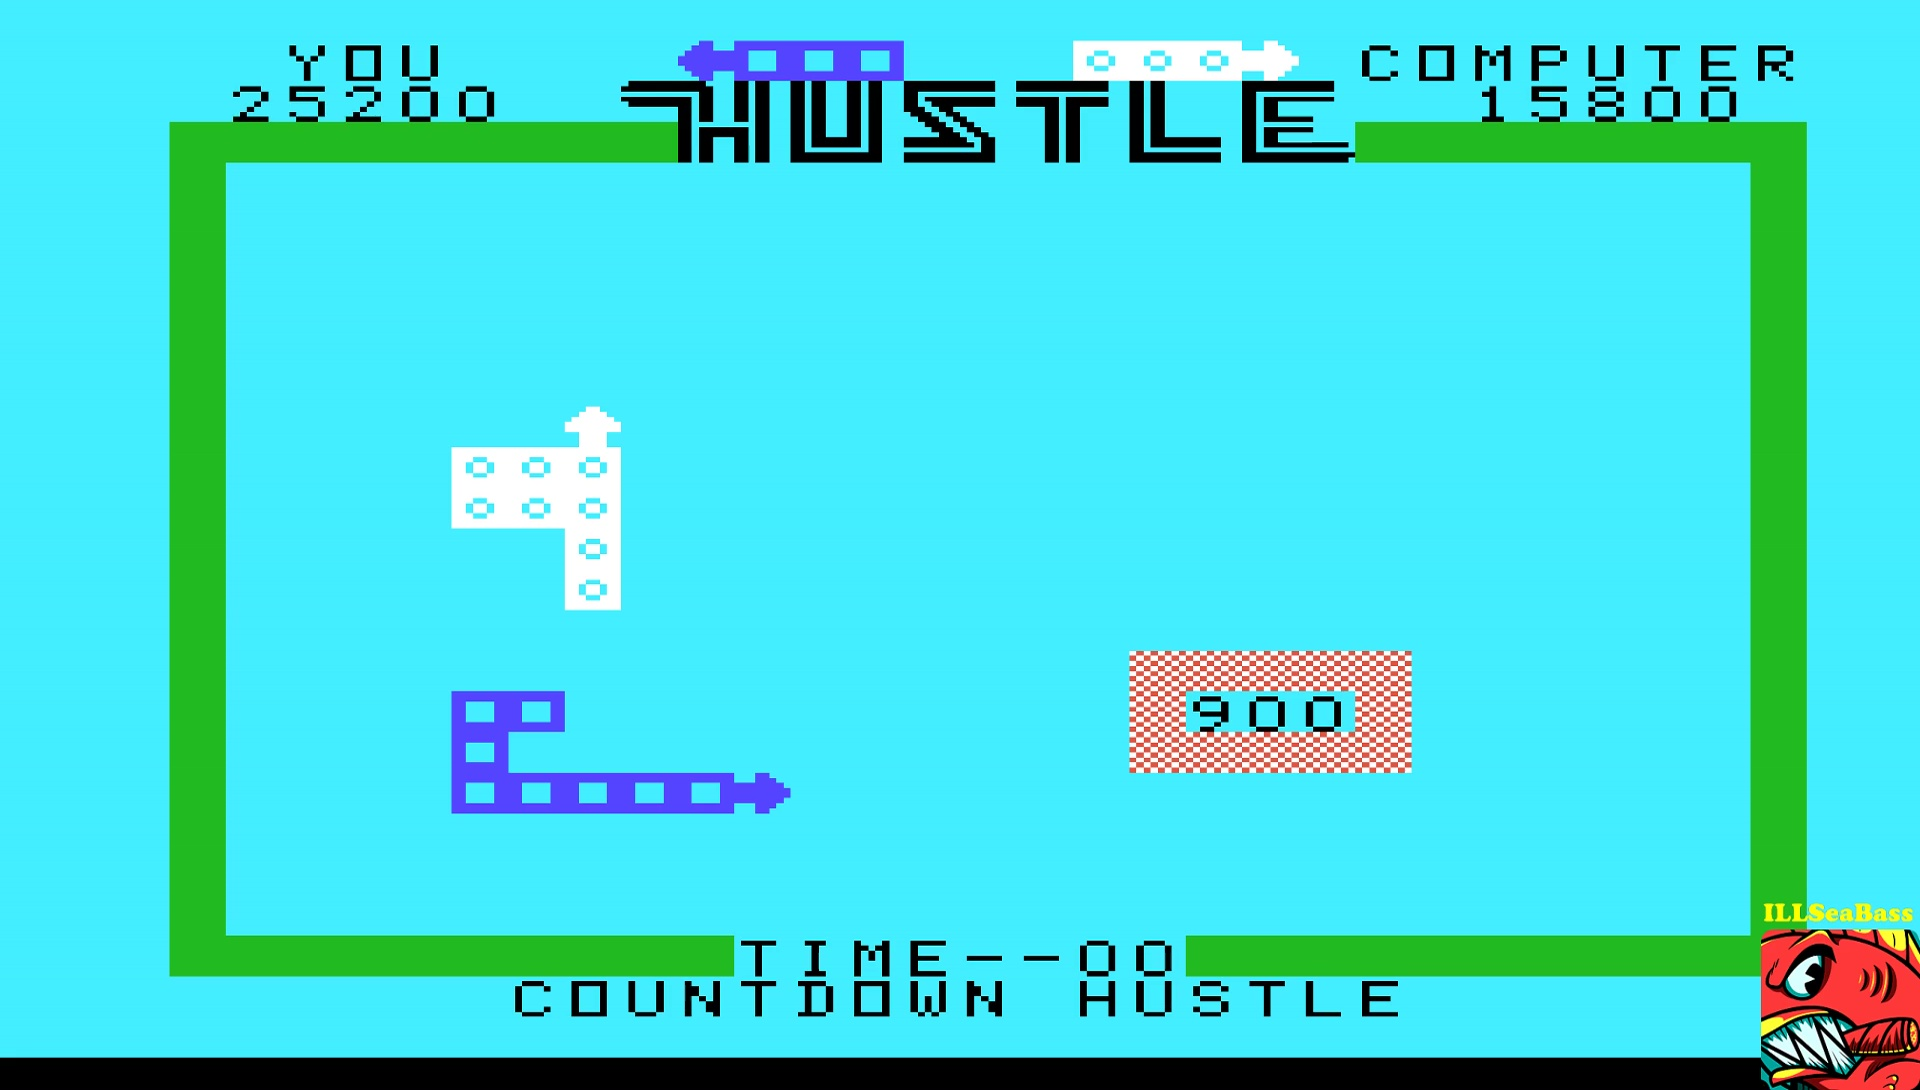 ILLSeaBass: Hustle [Countdown: Amateur] (TI 99/4A Emulated) 25,200 points on 2017-05-12 00:30:12